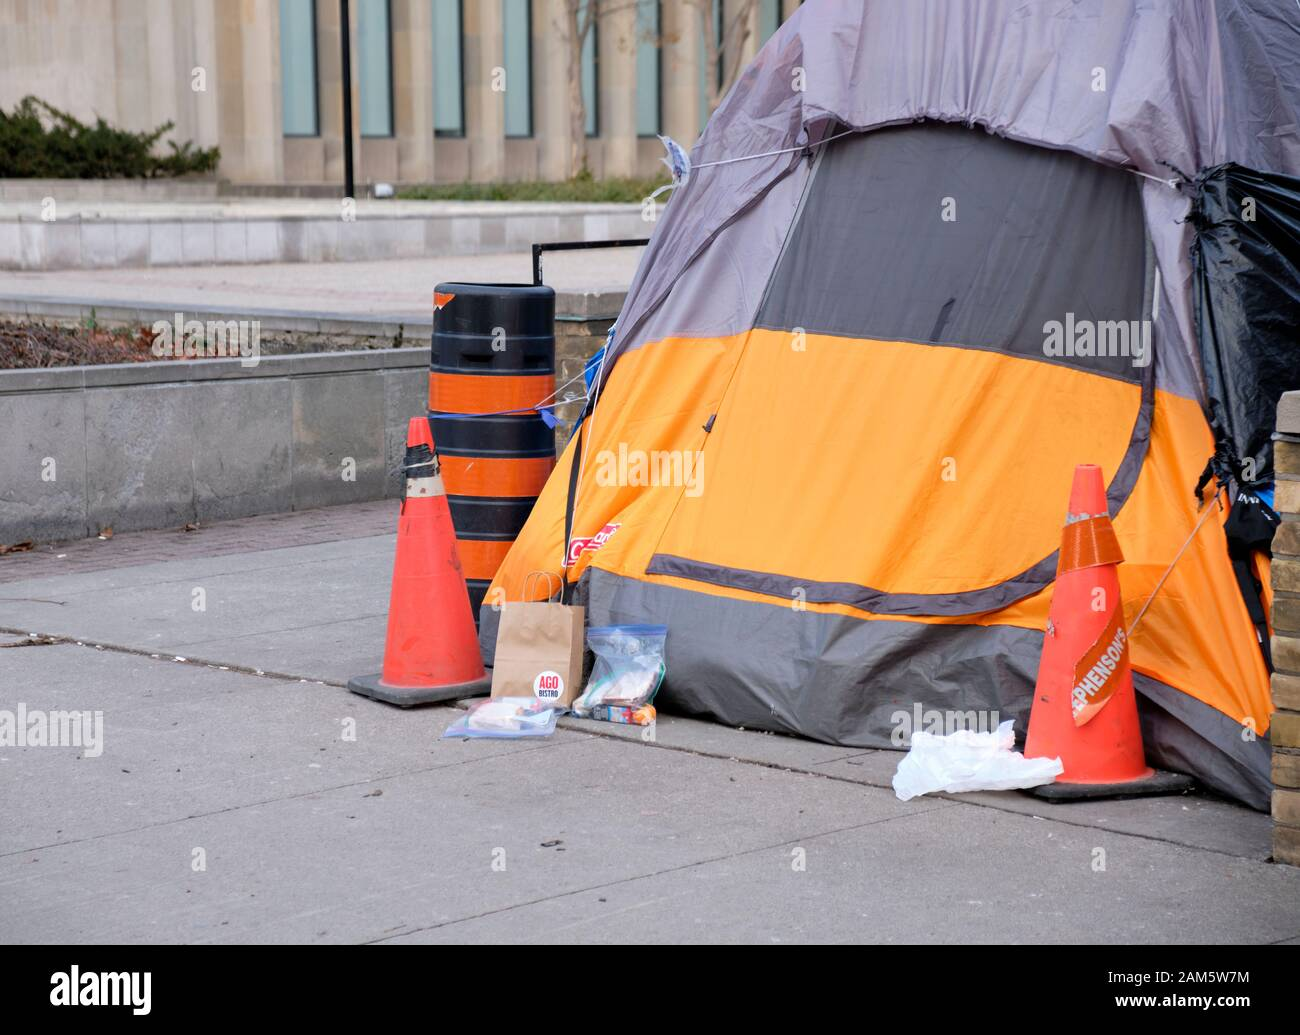 food-donations-at-door-of-homeless-tent-set-up-on-sidewalk-on-university-avenue-in-the-centre-of-toronto-on-a-cold-grey-winter-day-2AM5W7M.jpg